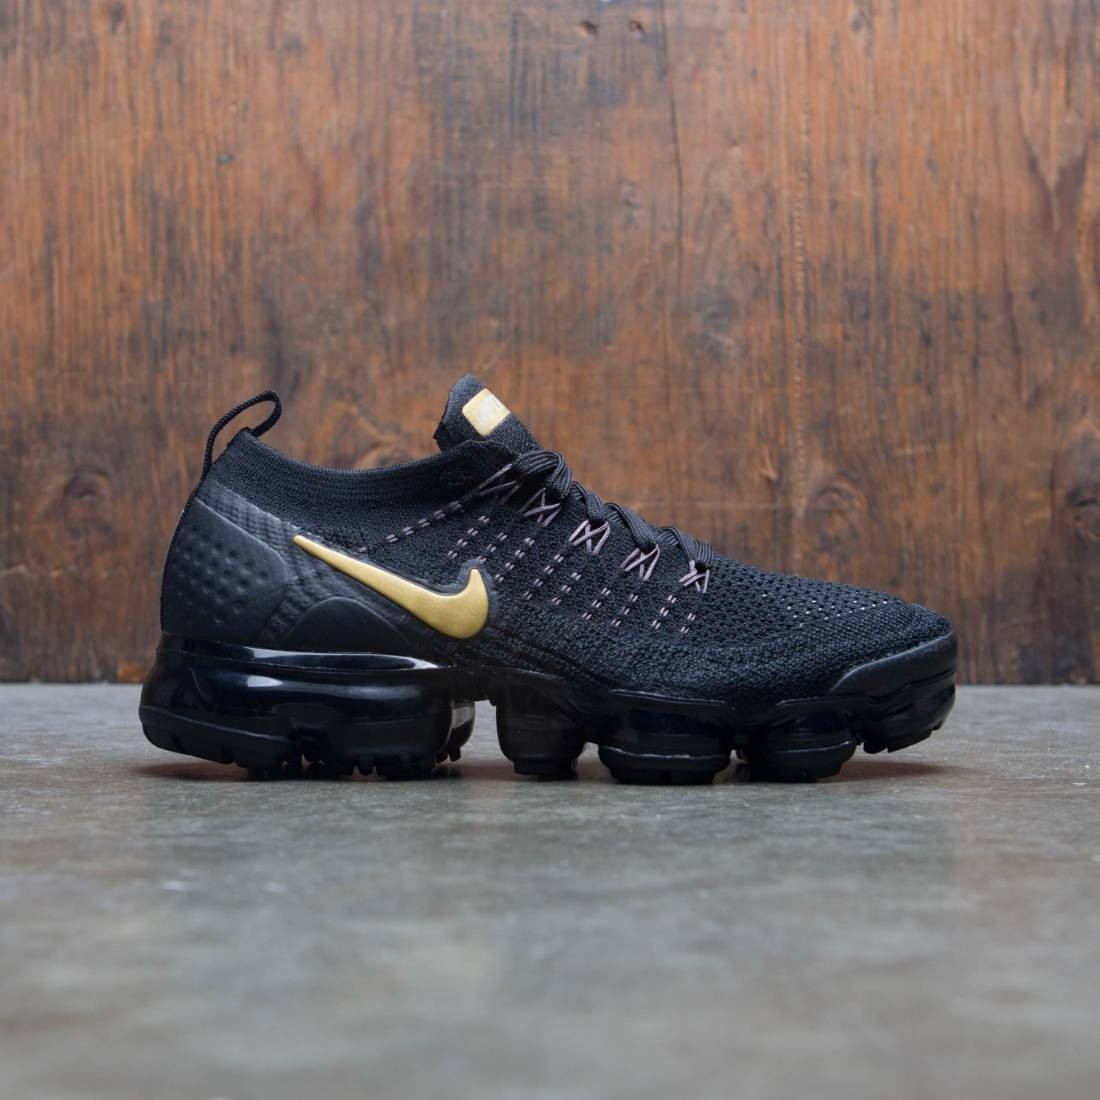 new concept 19383 43b35 Nike Women Air Vapormax Flyknit 2 (black / metallic gold-mtlc platinum)